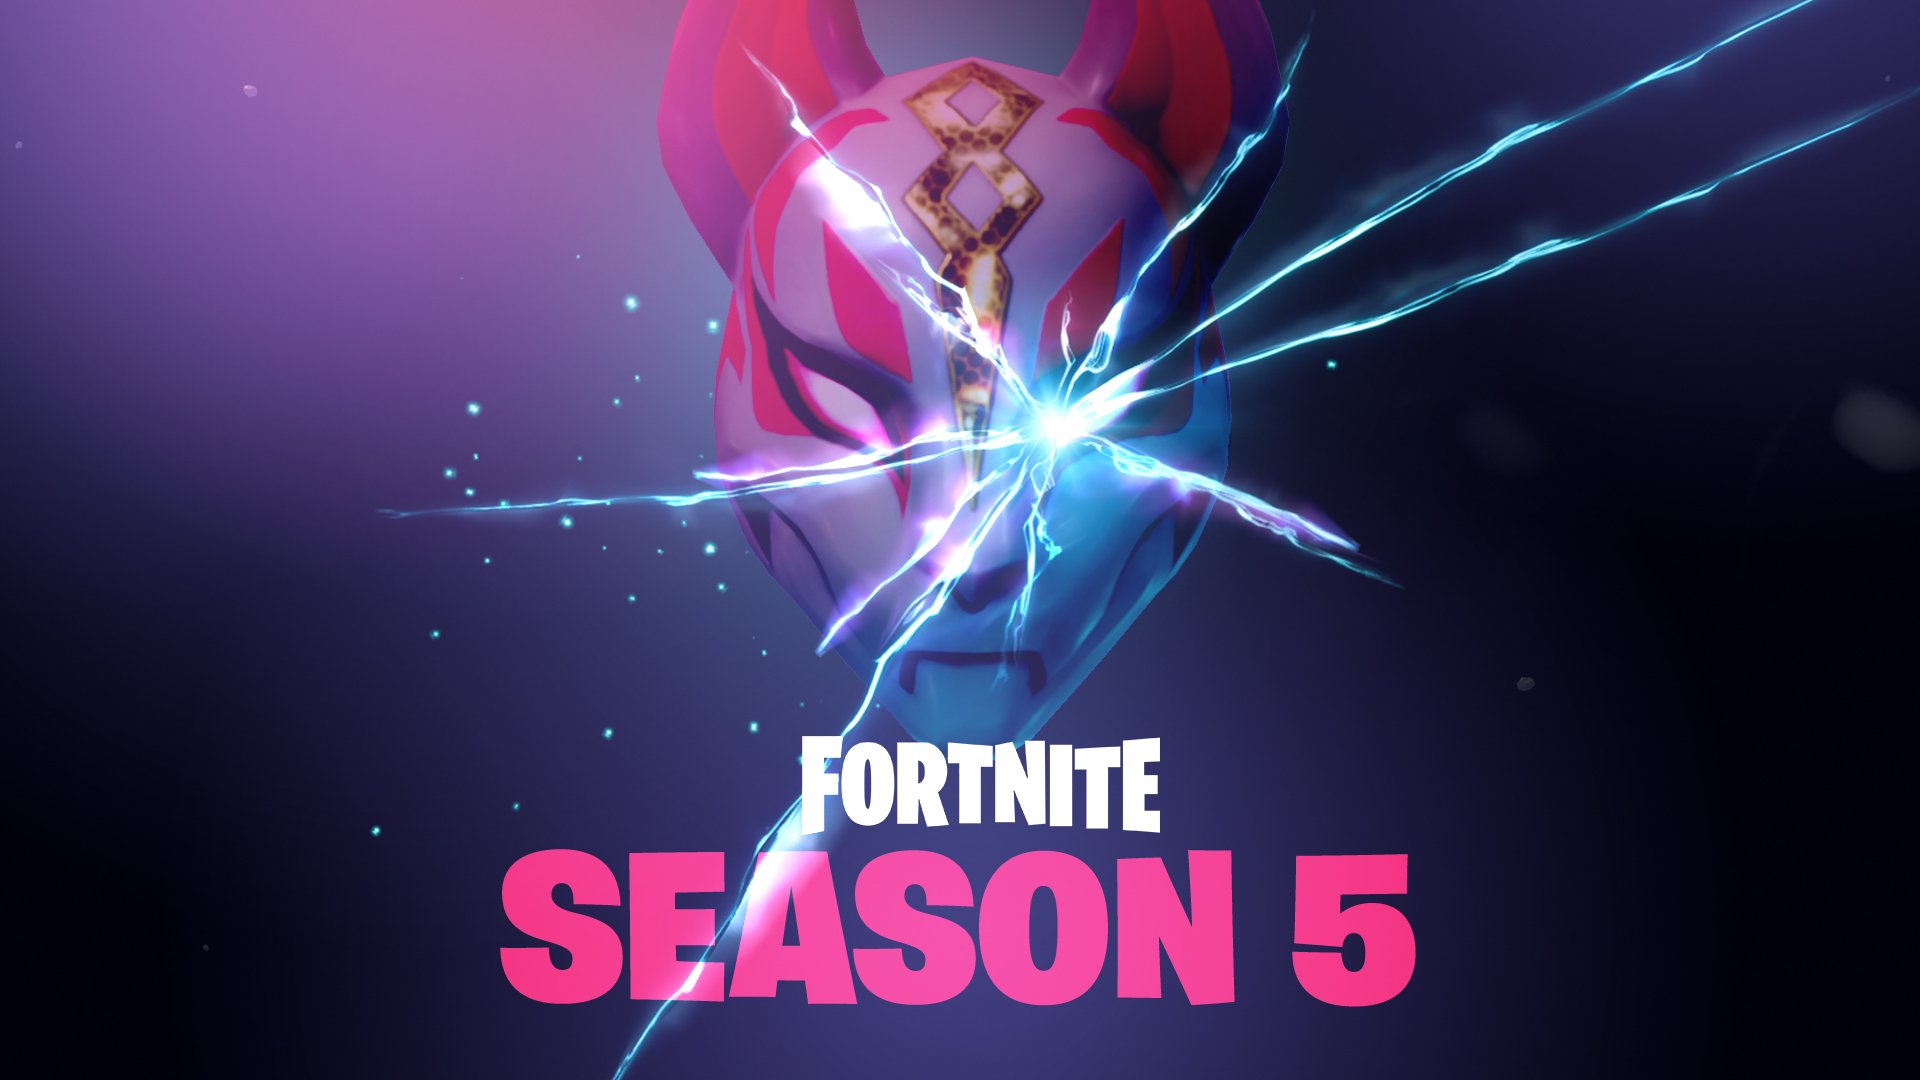 another season 5 teaser this time on the games new updates pop up uses the same mask image but is joined by the words worlds collide